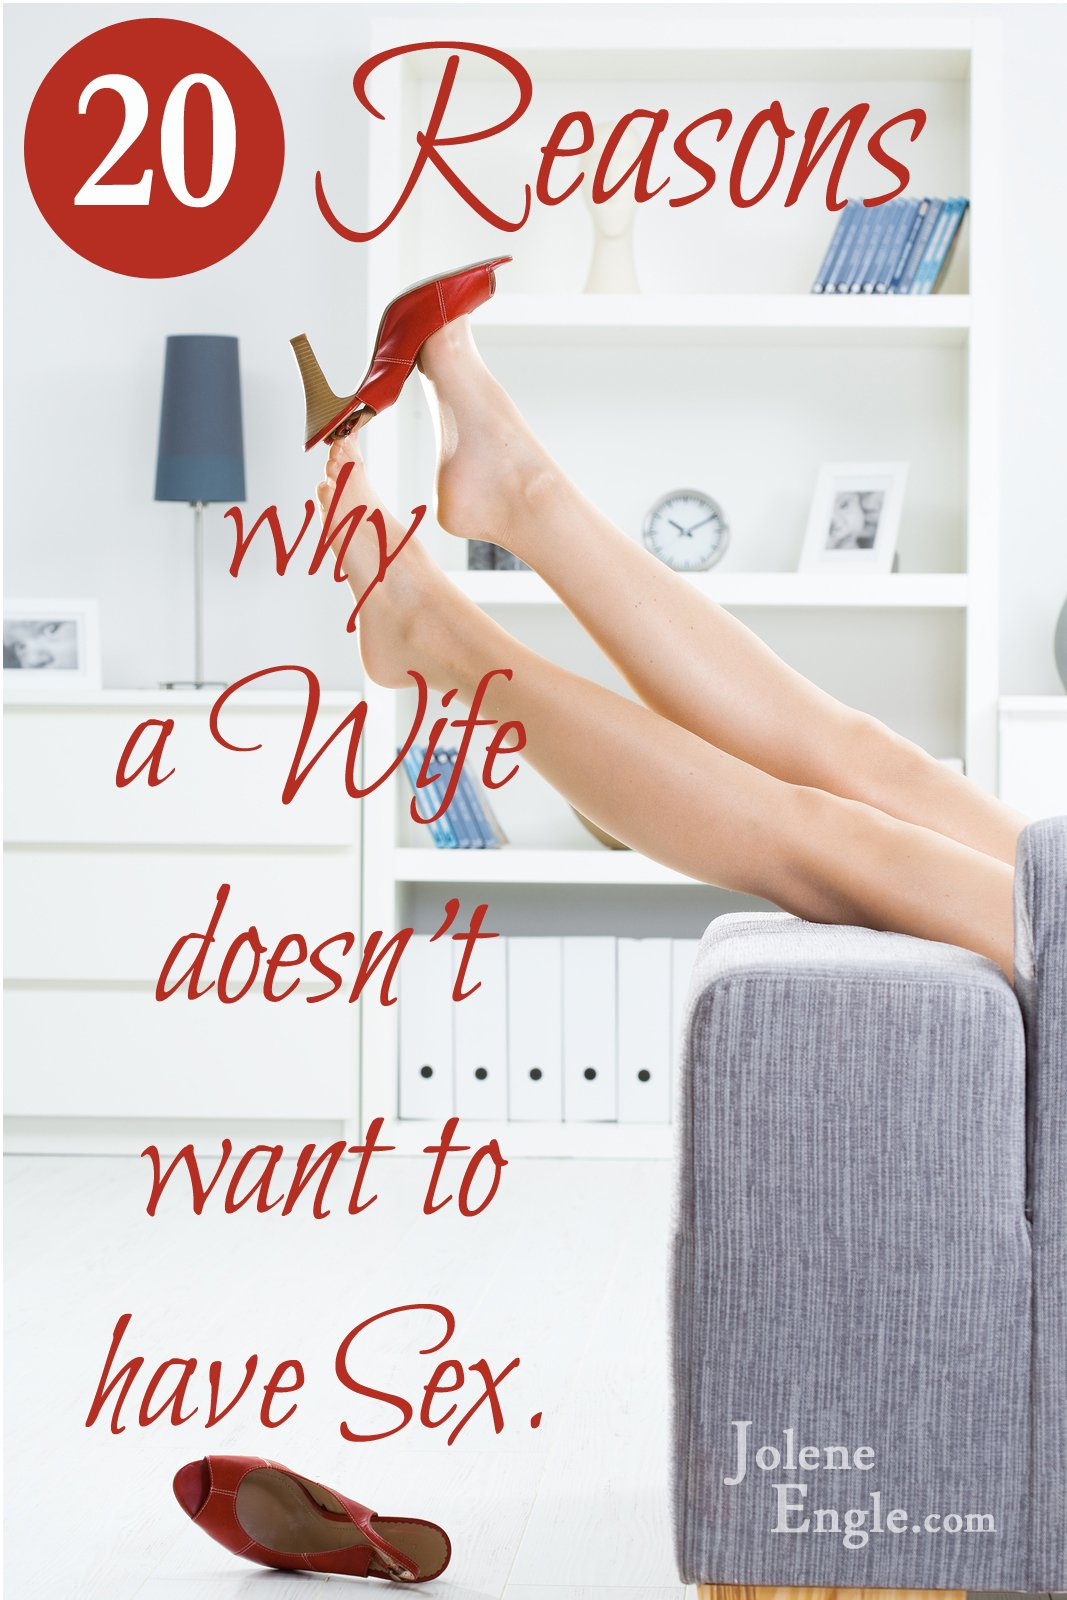 Wife doesnt want sex any more